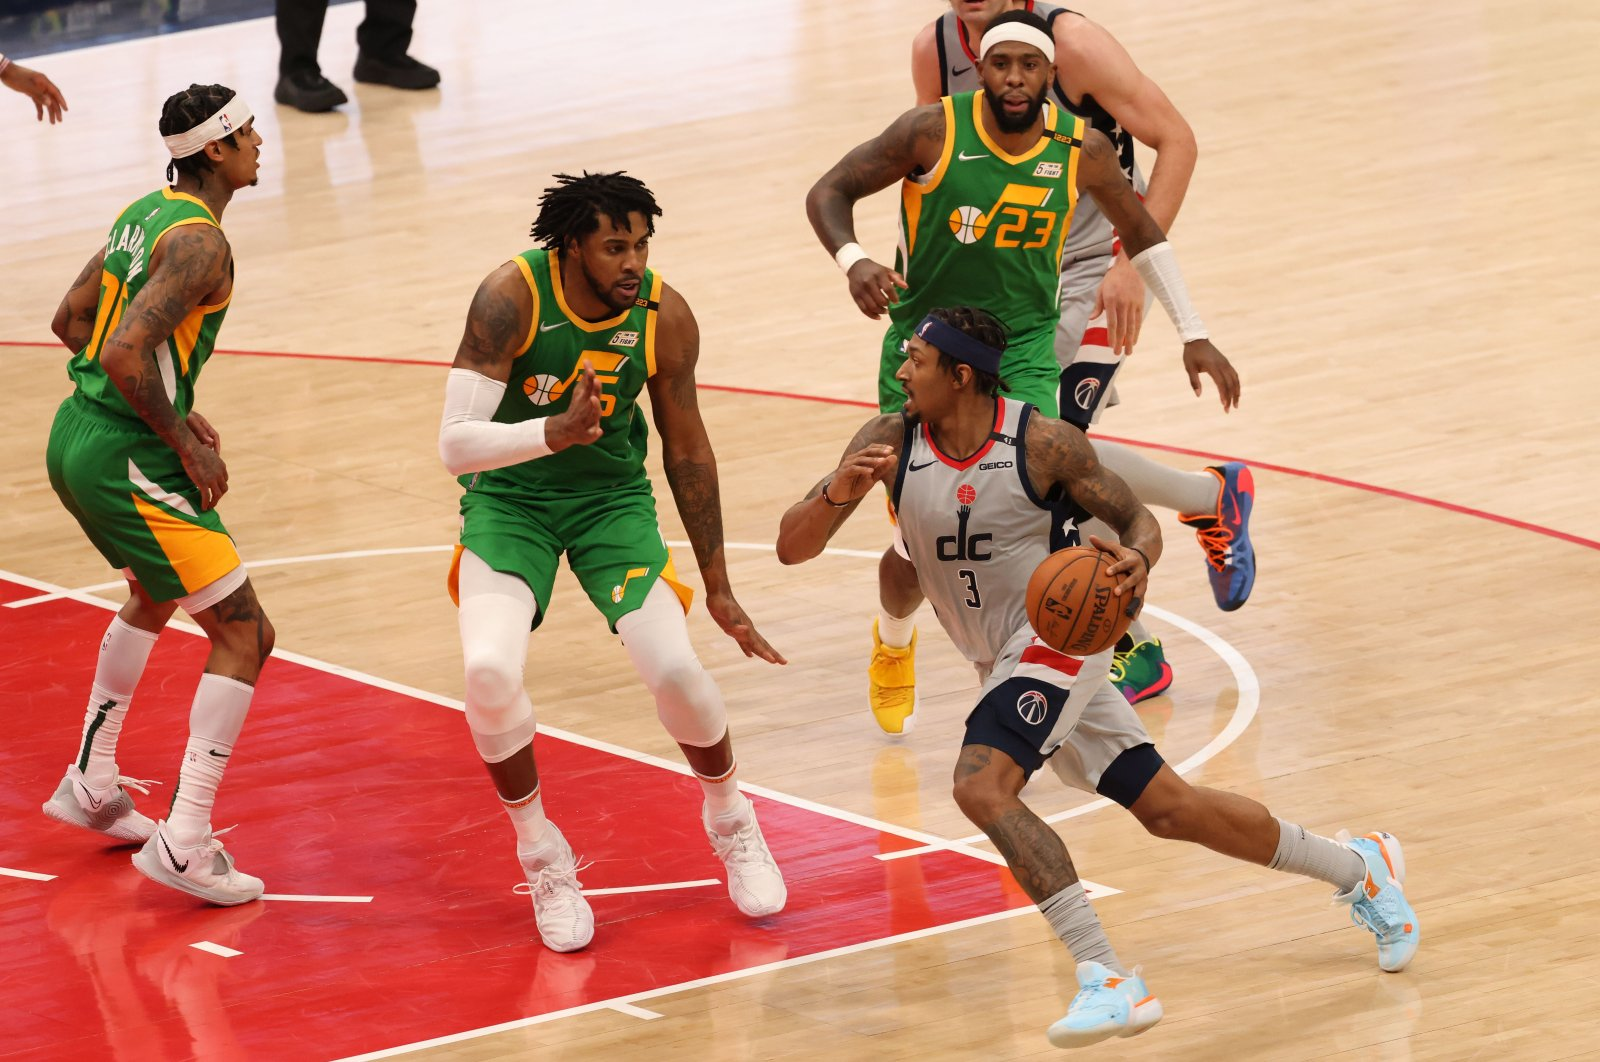 Washington Wizards guard Bradley Beal (R) drives to the basket as Utah Jazz forward Derrick Favors (L) defends in an NBA game at Capital One Arena, Washington, D.C., U.S., Mar 18, 2021. (Reuters Photo)